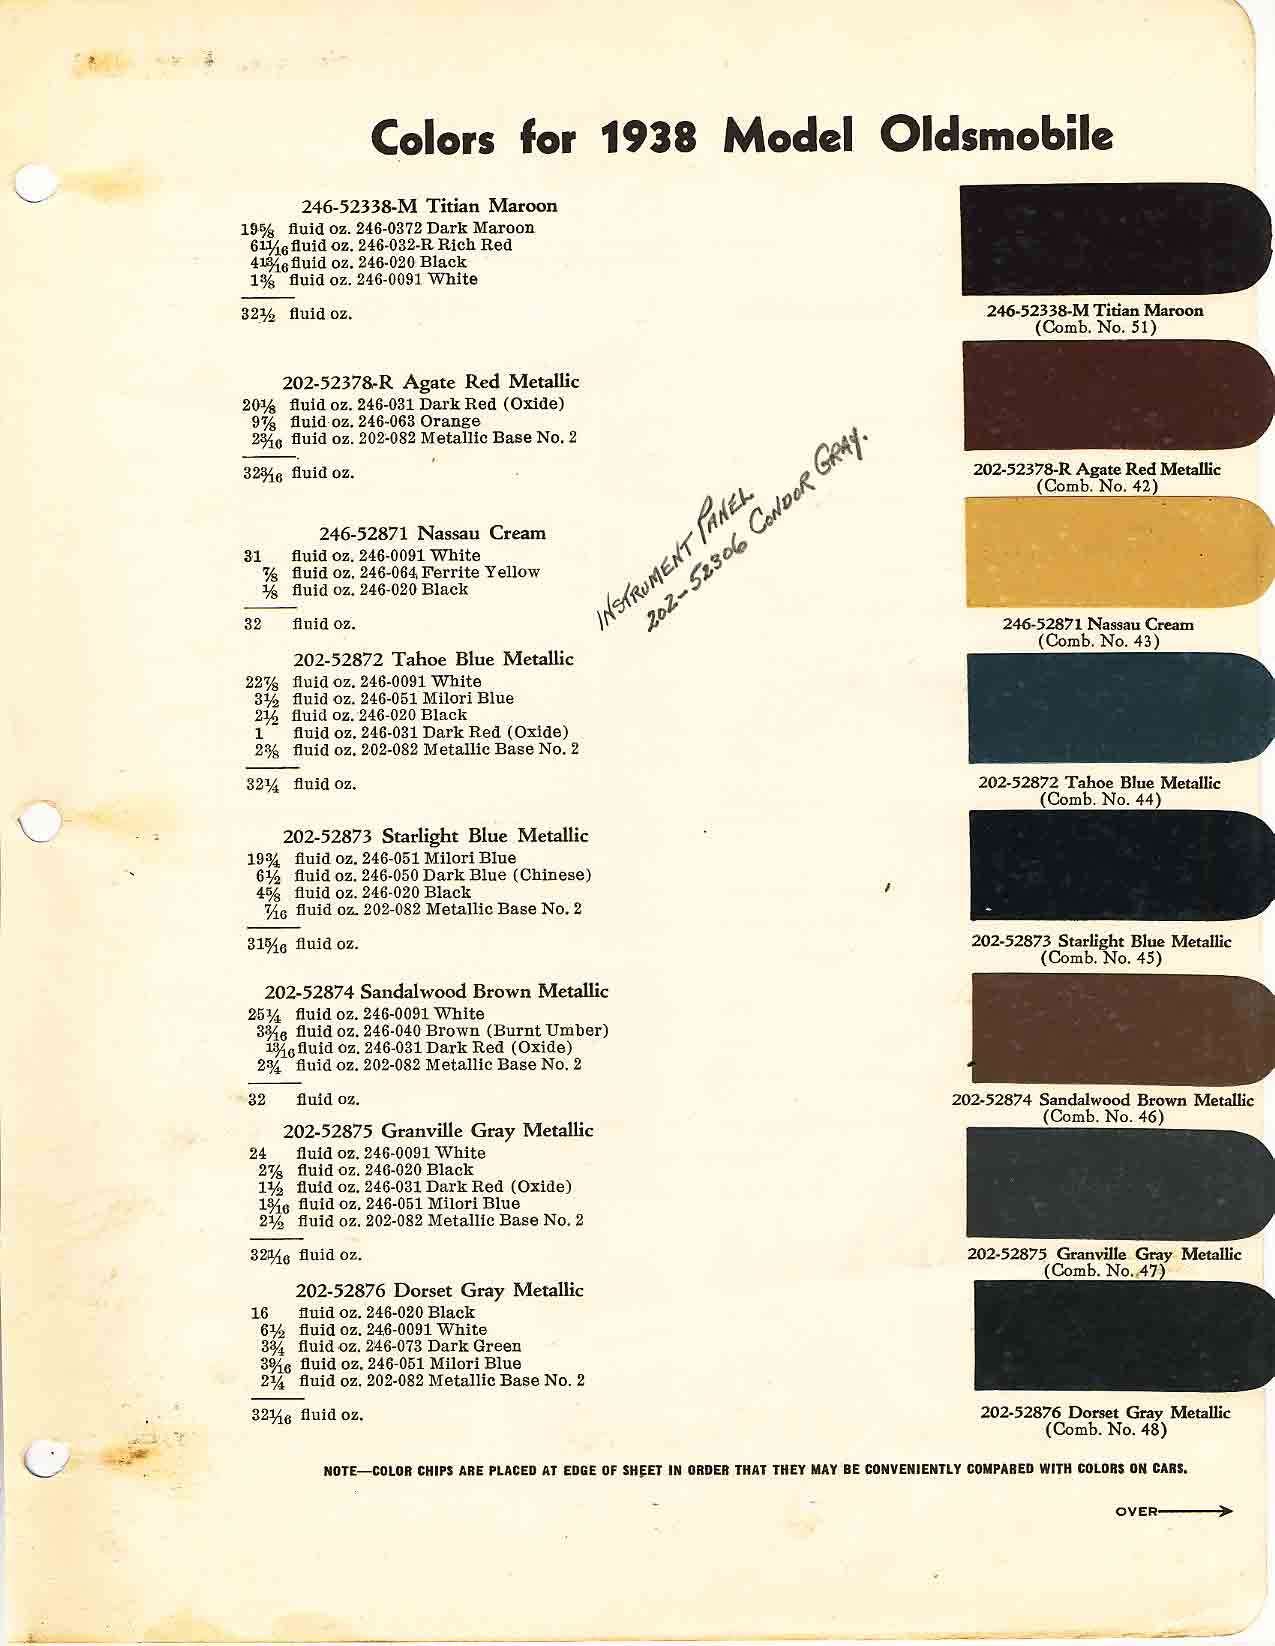 Paint Colors and Paint Codes used on the 1938 Oldsmobile